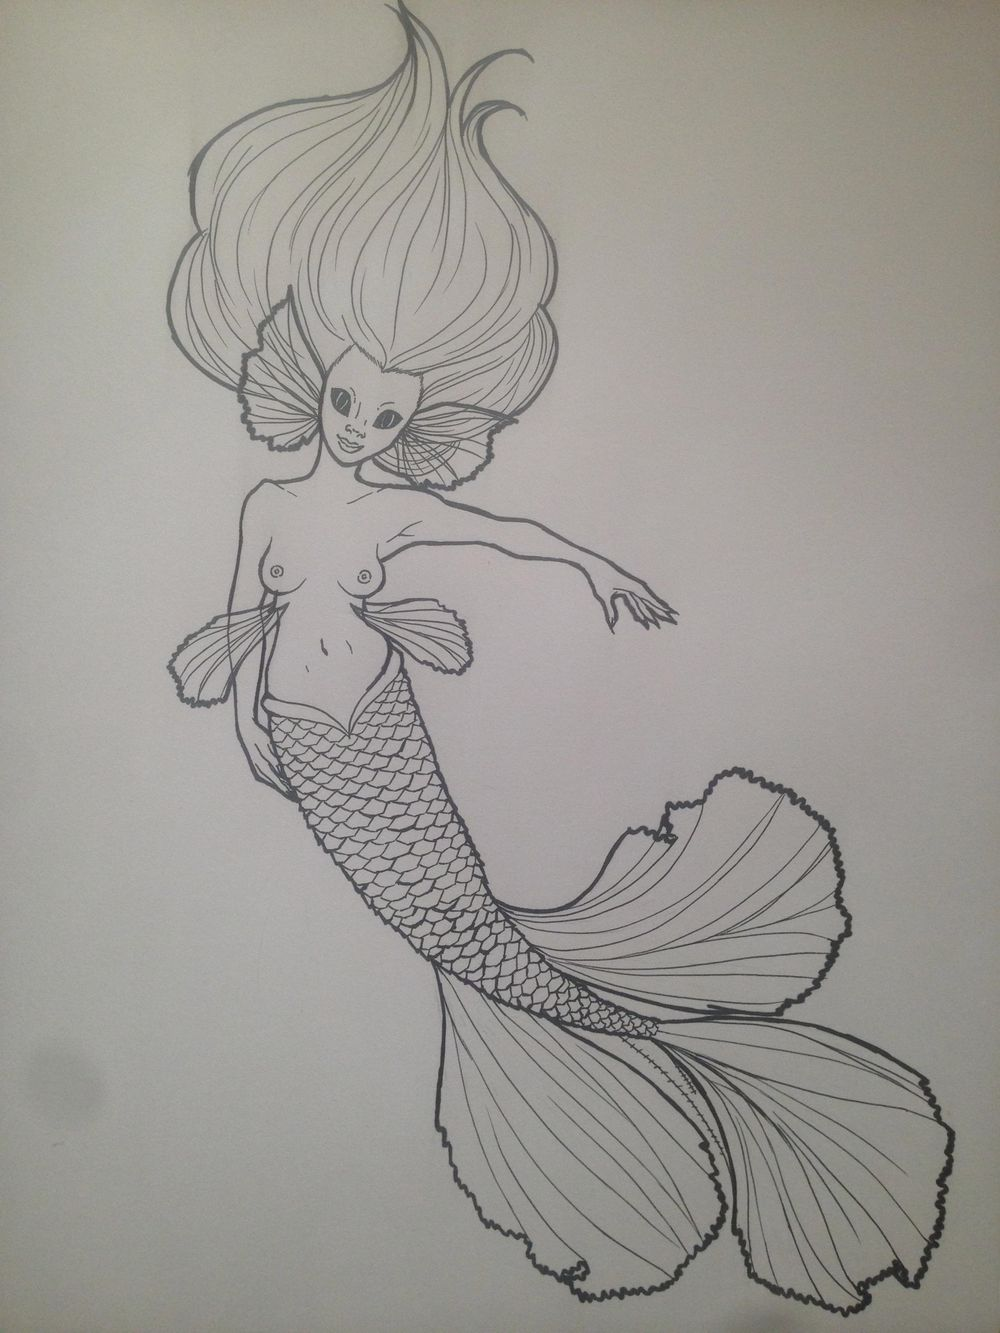 Mermaids - image 2 - student project